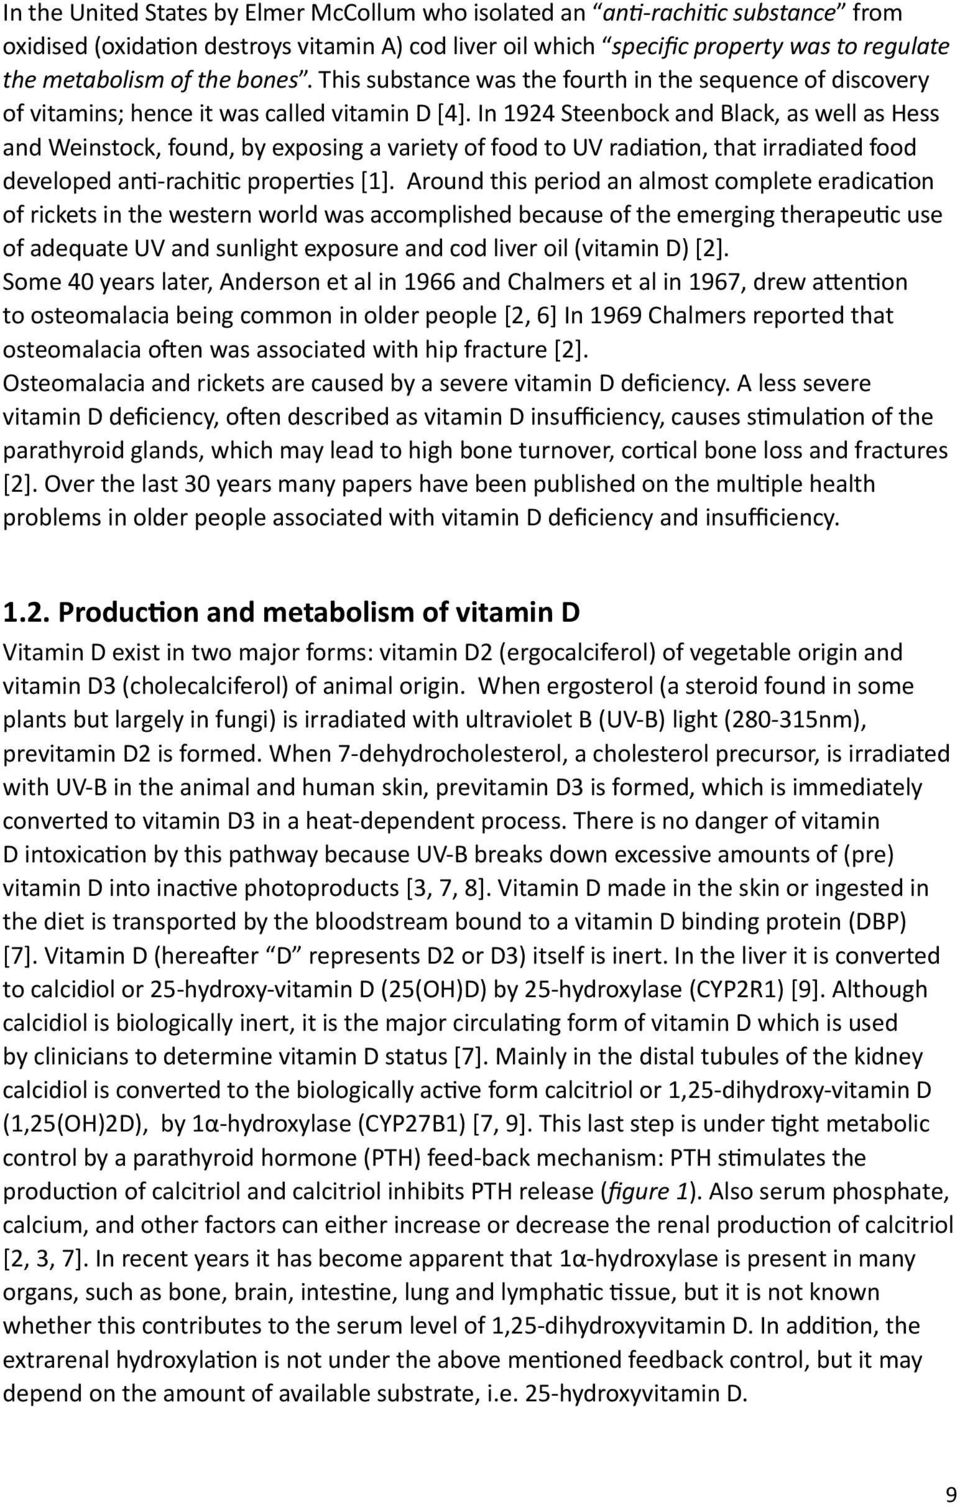 In 1924 Steenbock and Black, as well as Hess and Weinstock, found, by exposing a variety of food to UV radiation, that irradiated food developed anti-rachitic properties [1].